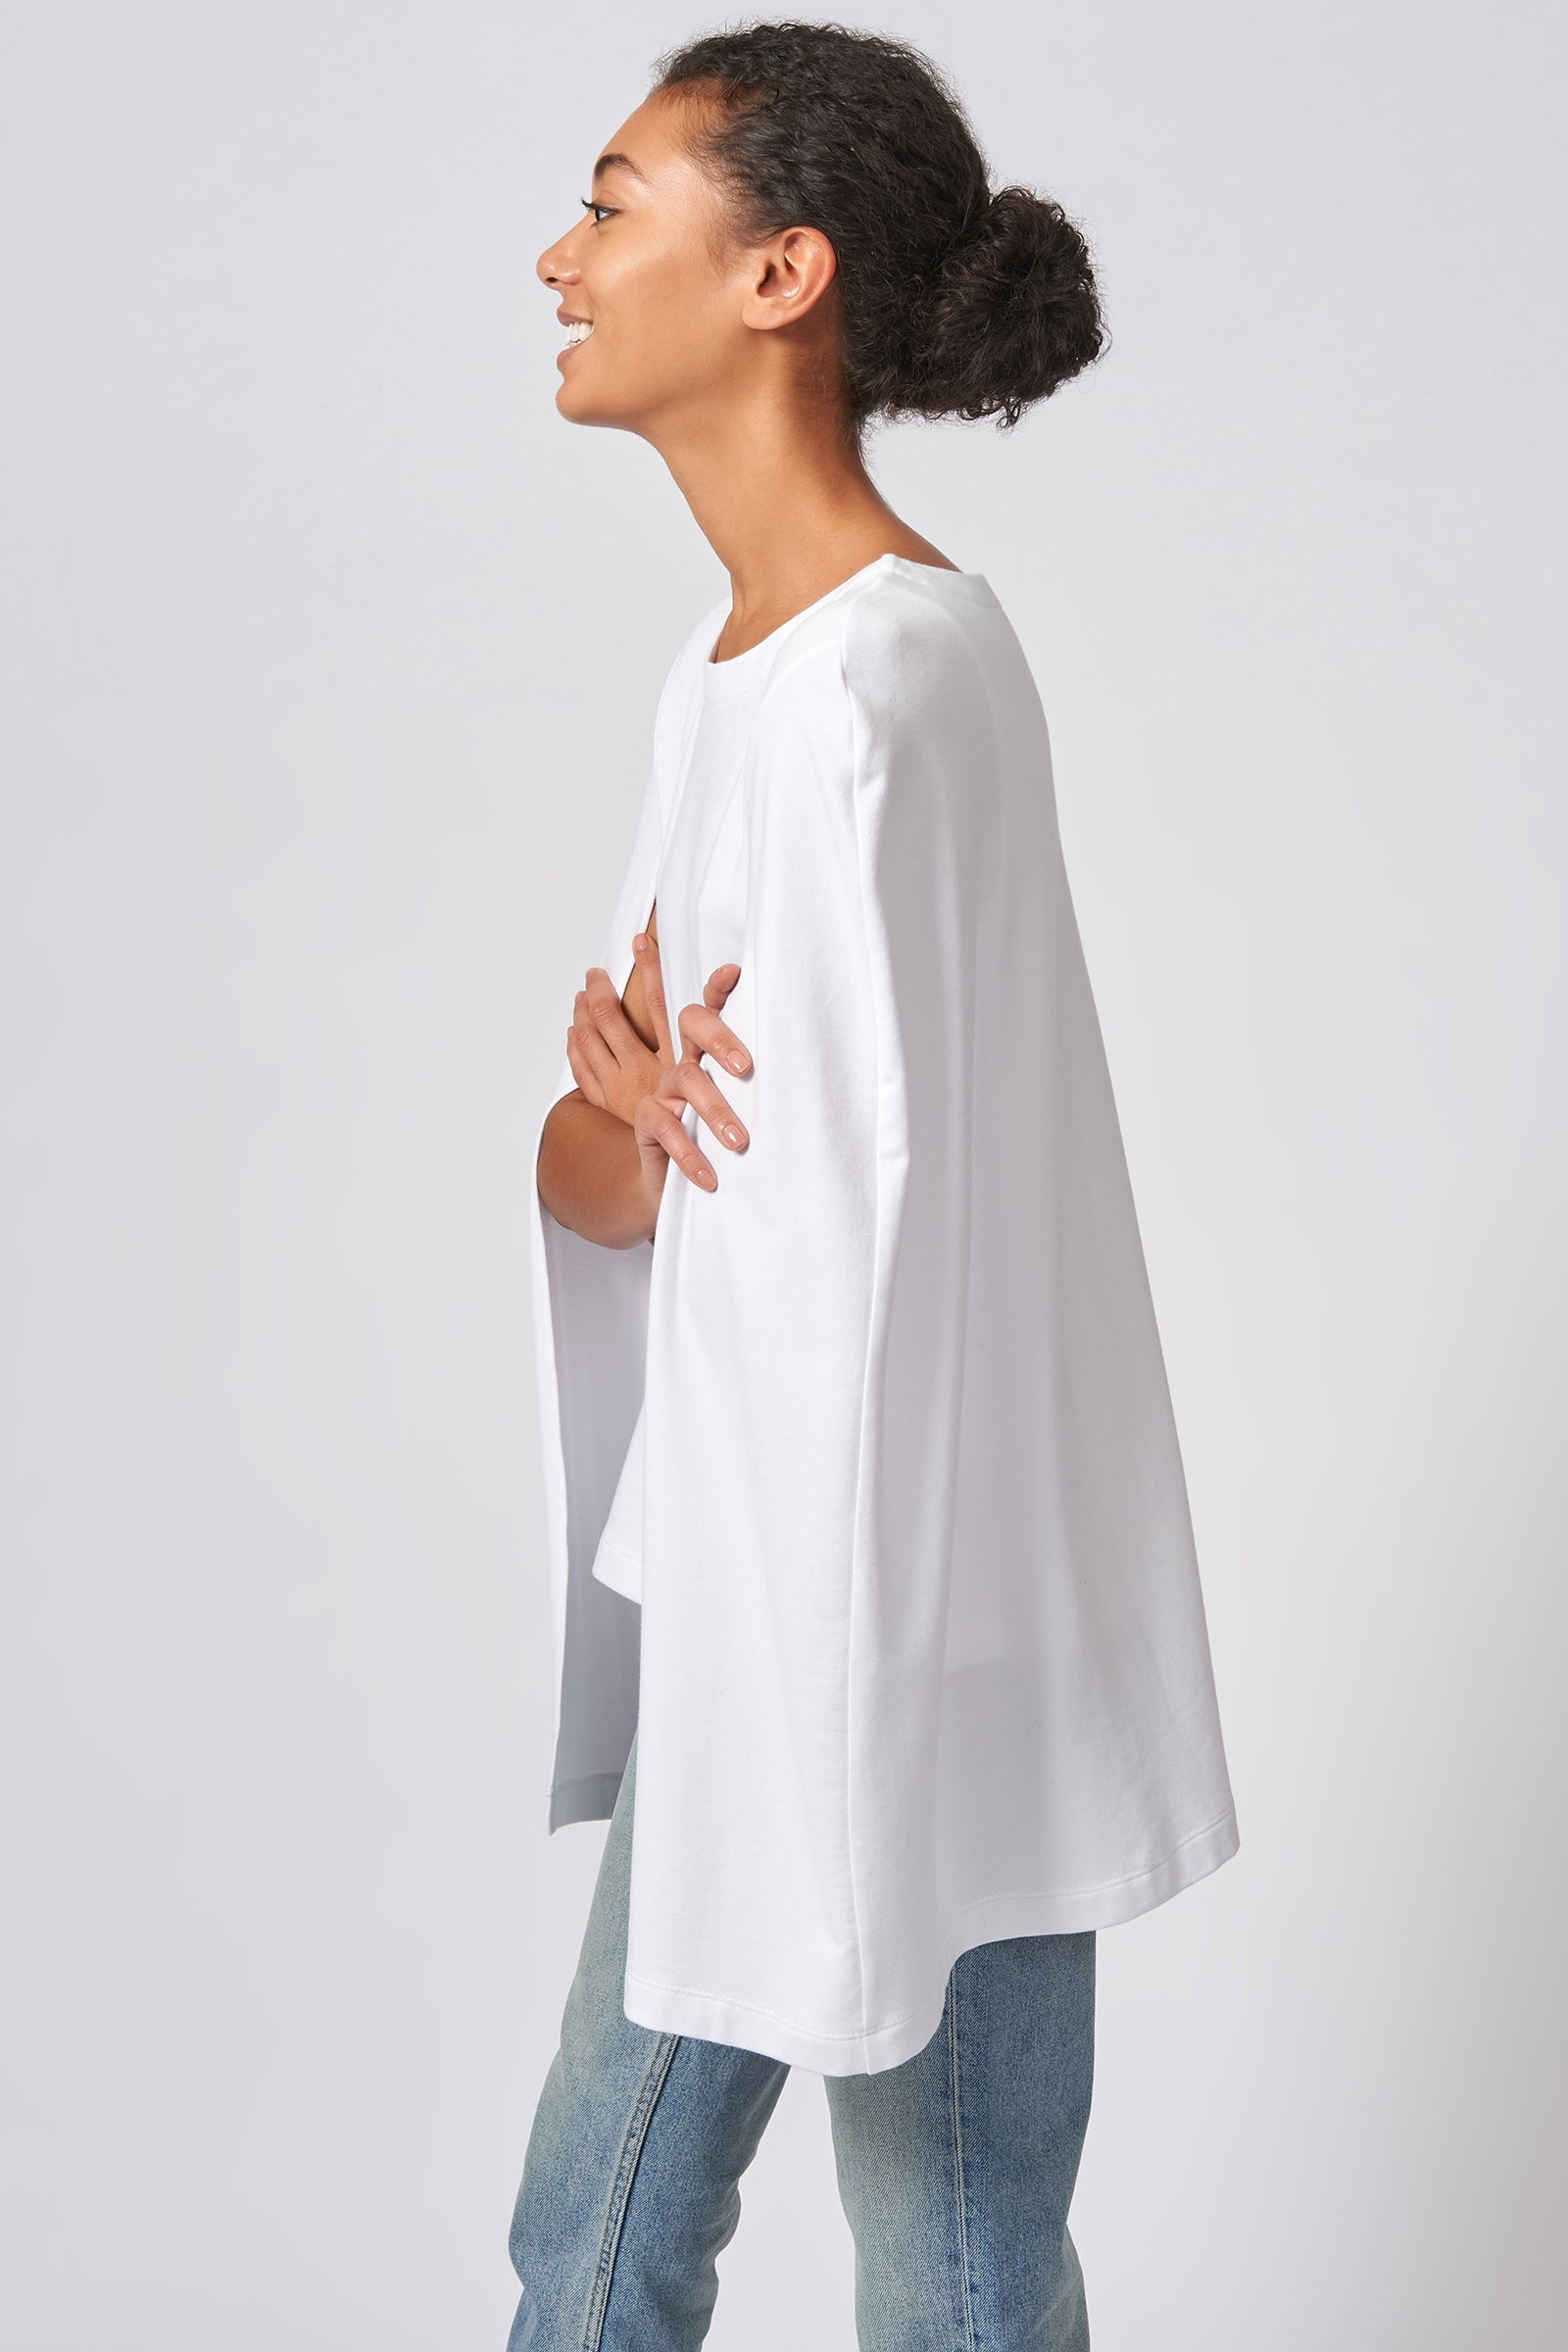 Kal Rieman Cape Sweatshirt in White on Model Side View